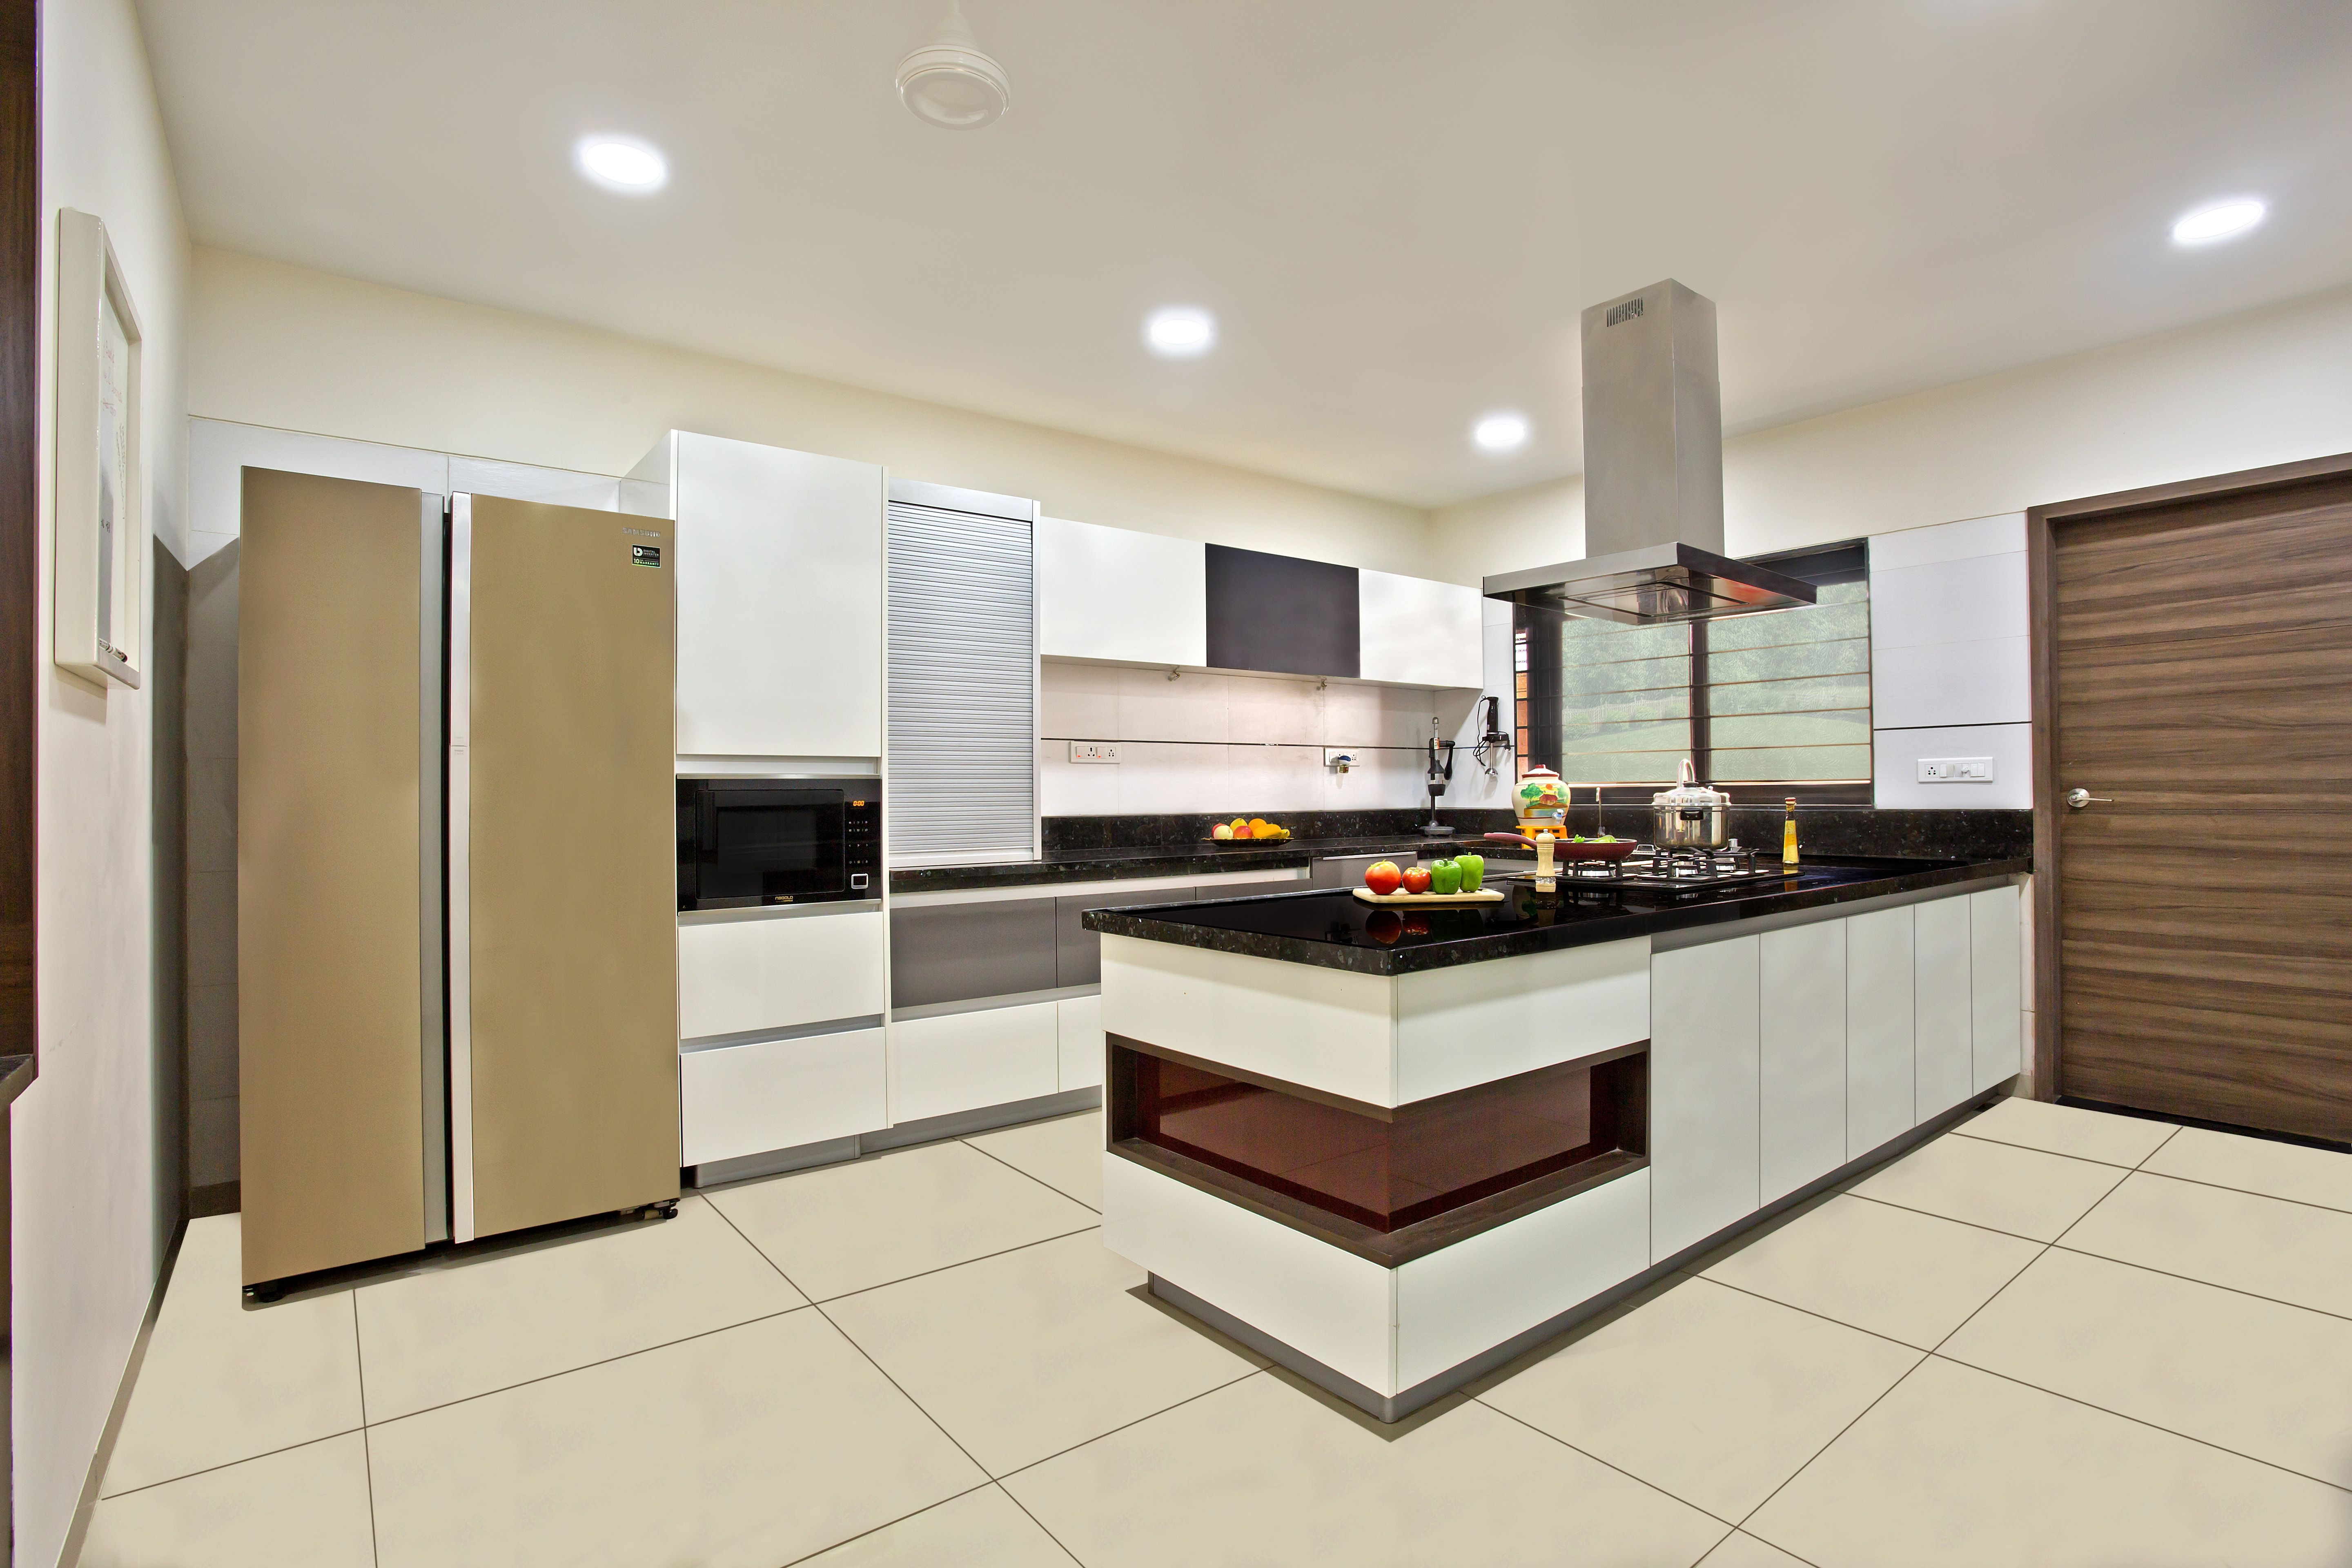 4 Reasons To Convert Normal Kitchen To Modular Kitchen. in 4